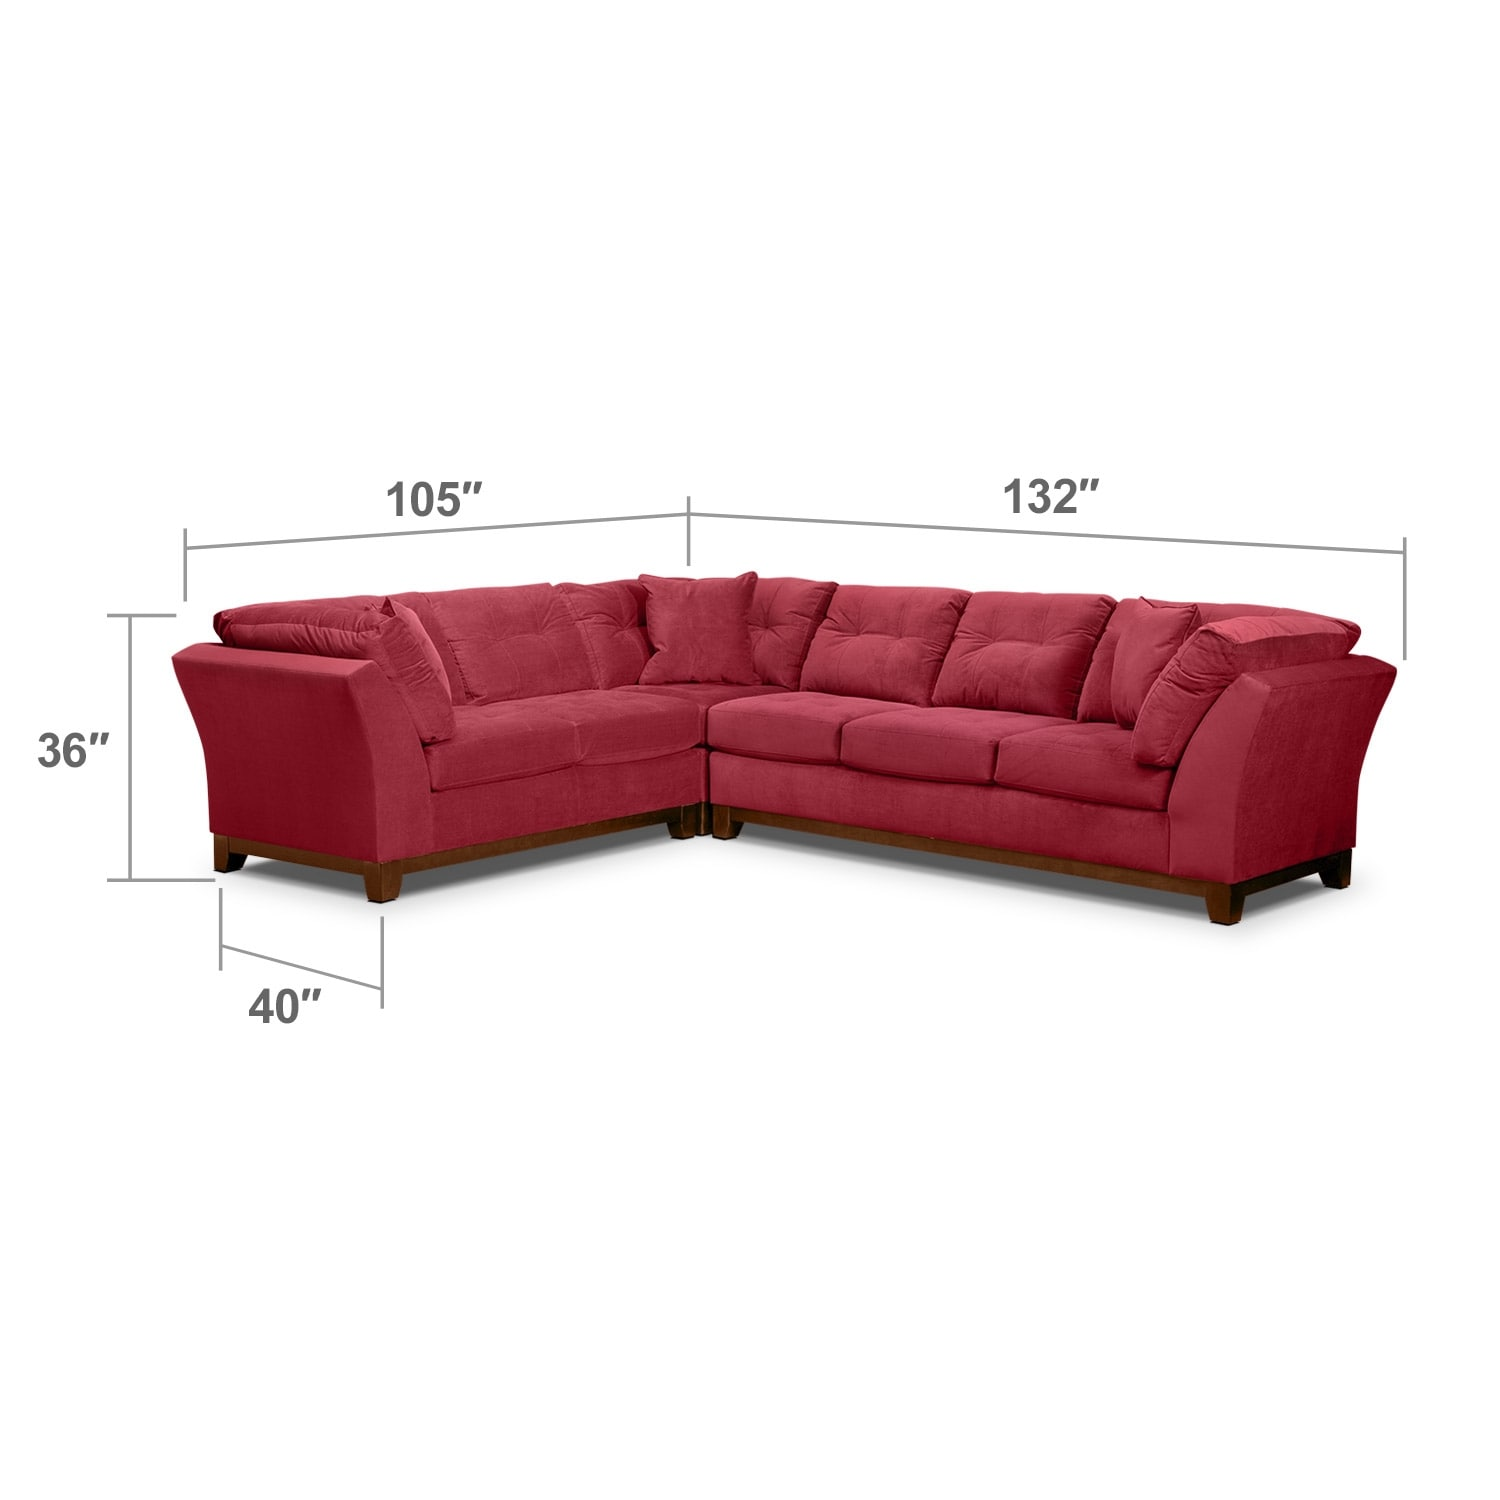 Living Room Furniture - Solace 3-Piece Right-Facing Sofa Sectional - Poppy